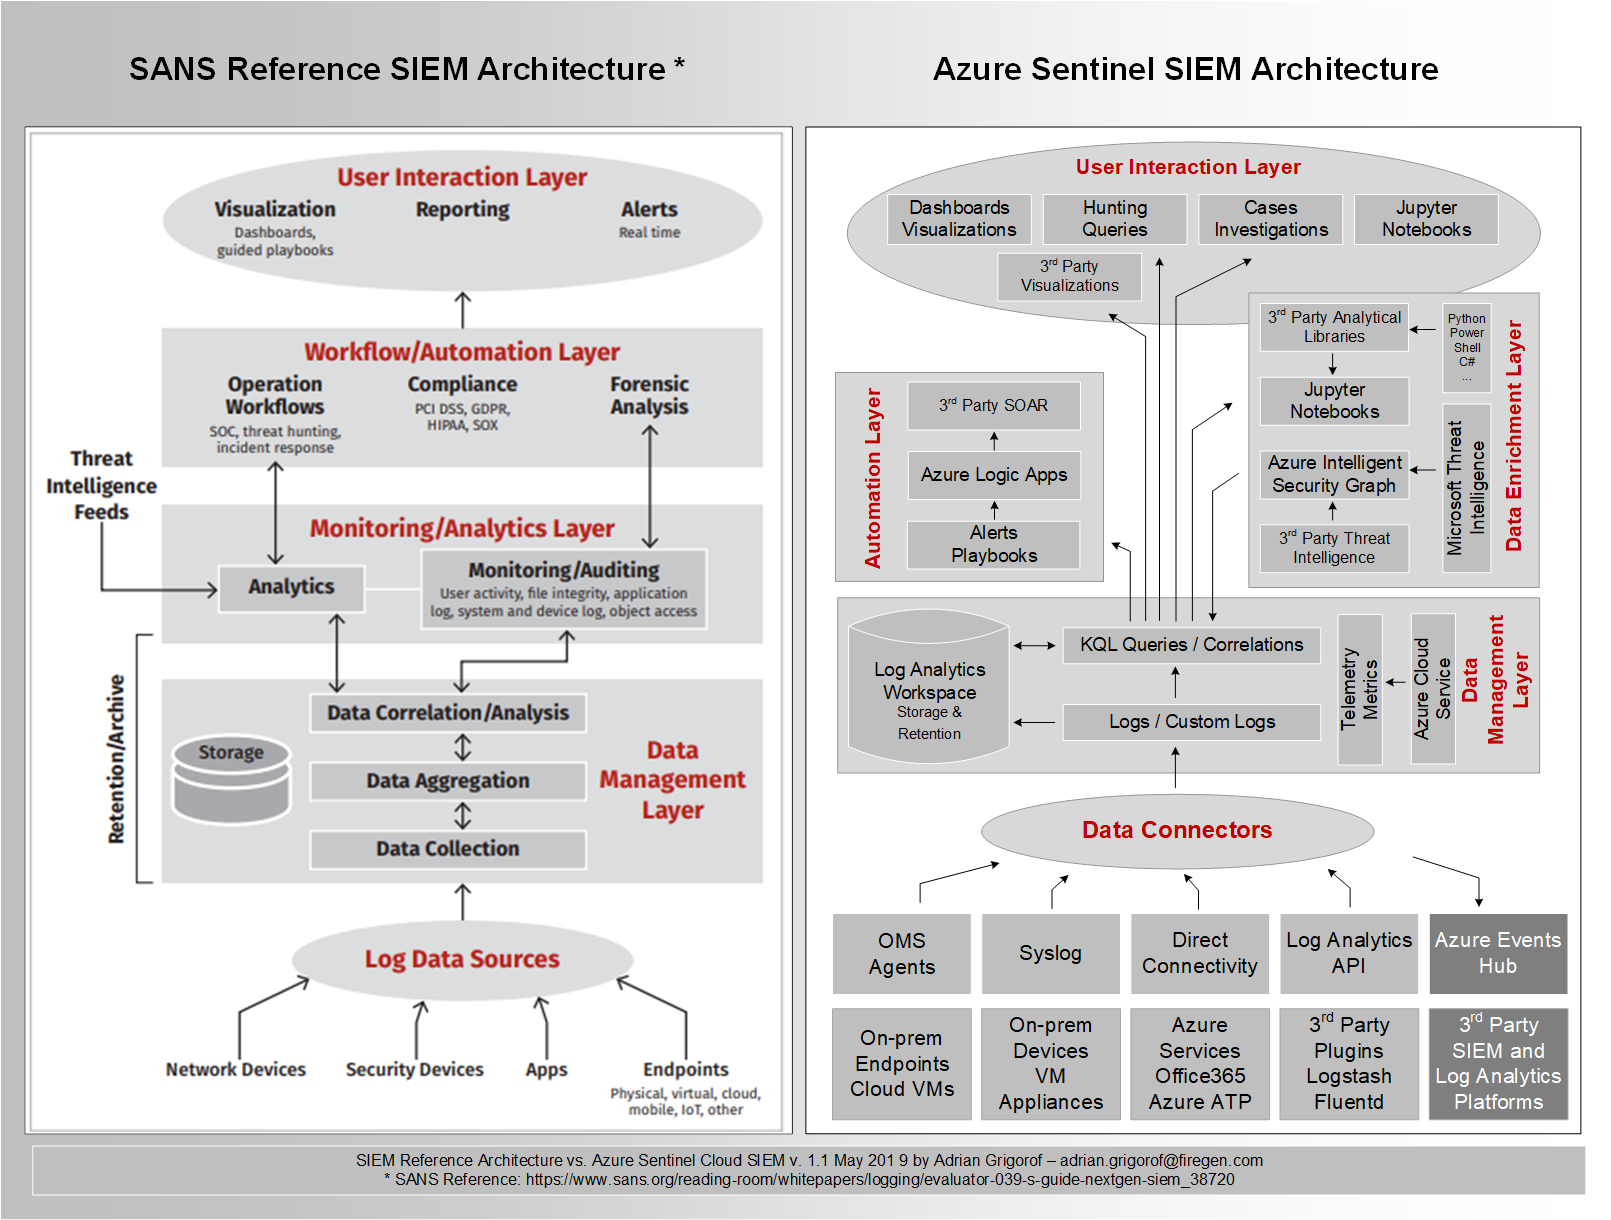 Azure Sentinel cloud SIEM architecture vs. traditional SIEM platforms